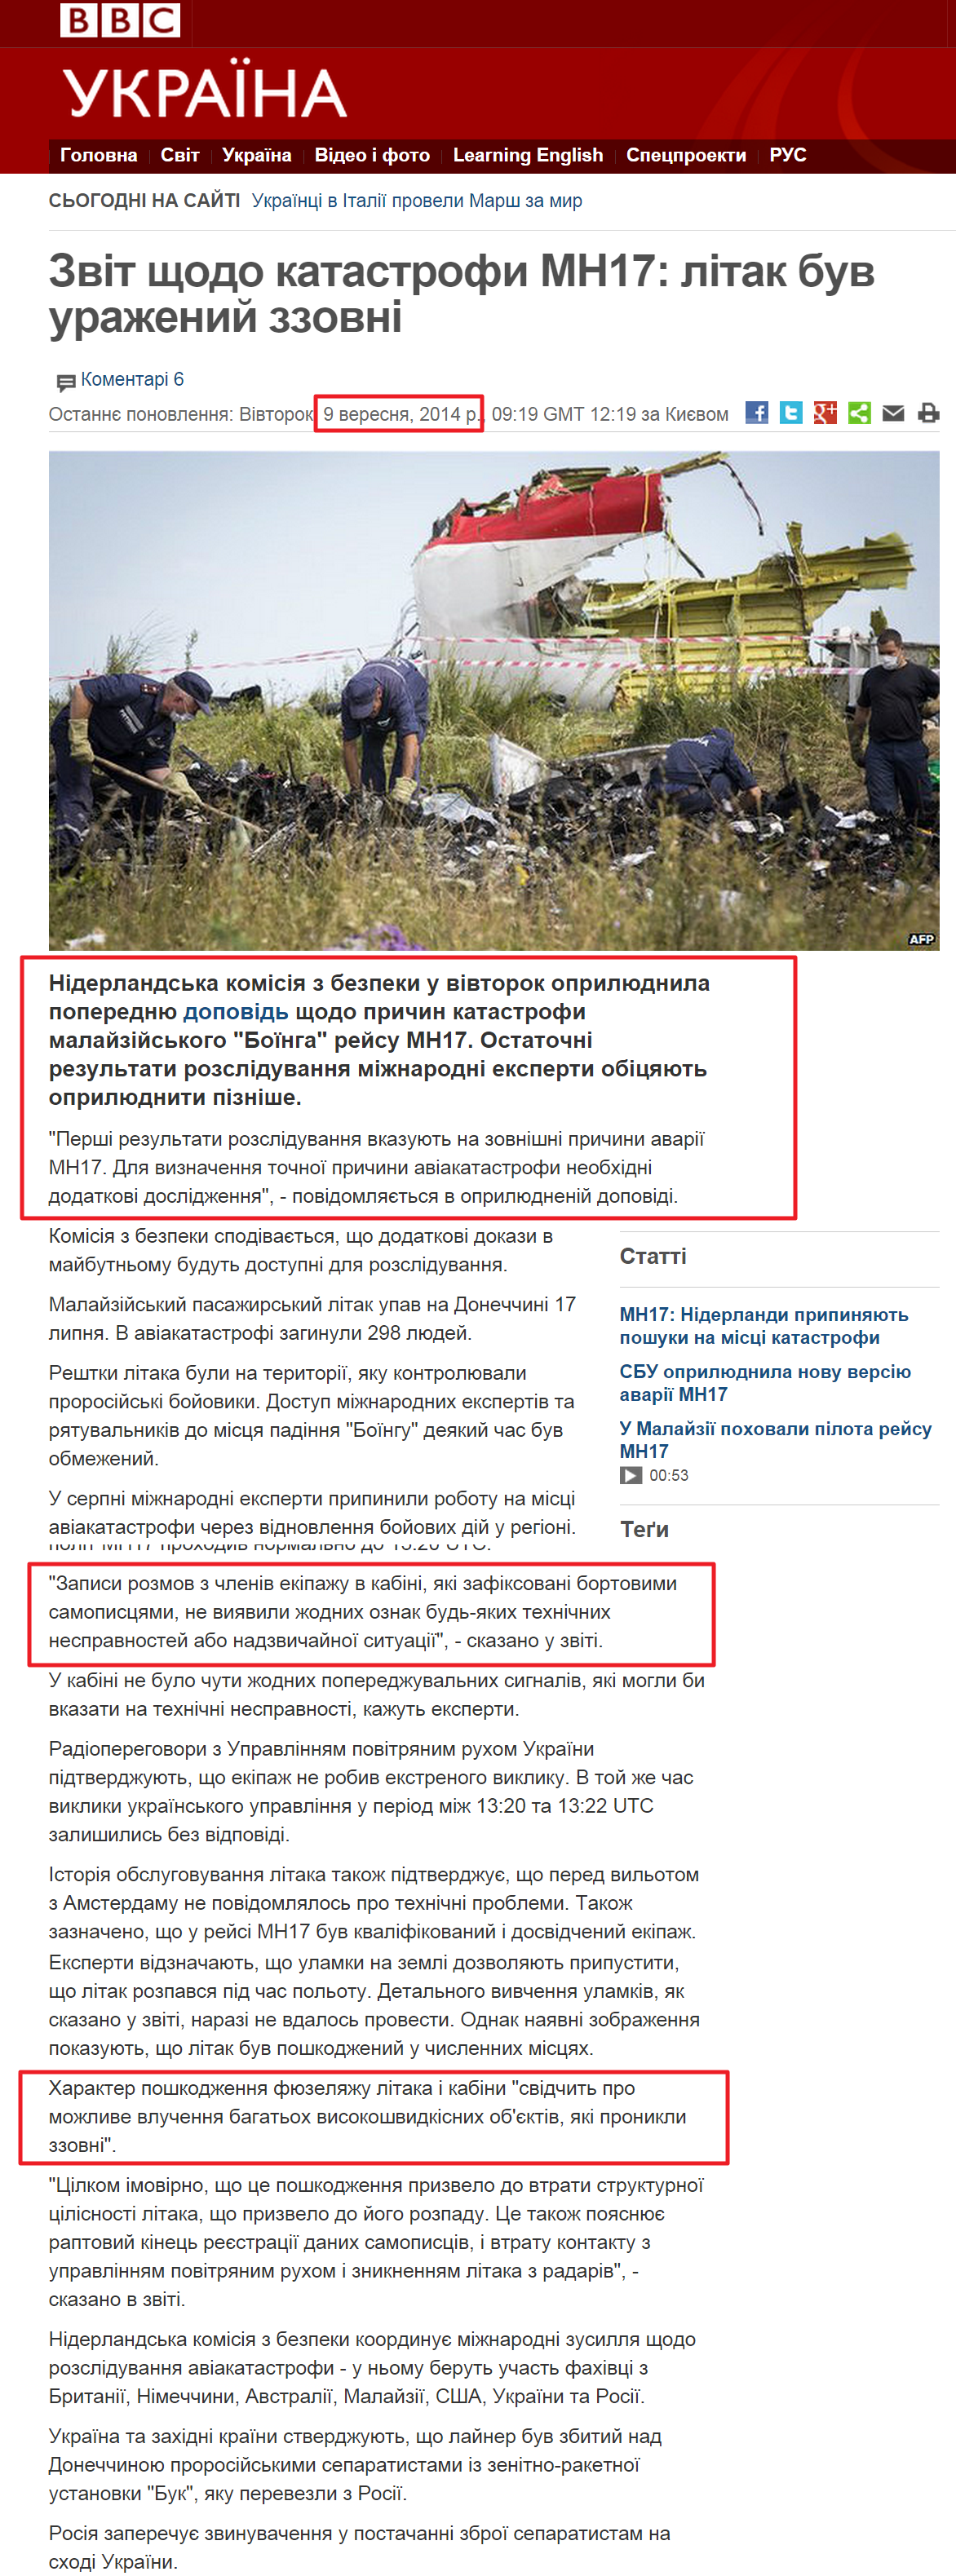 http://www.bbc.co.uk/ukrainian/politics/2014/09/140909_mh17_crash_dutch_report_zsh.shtml